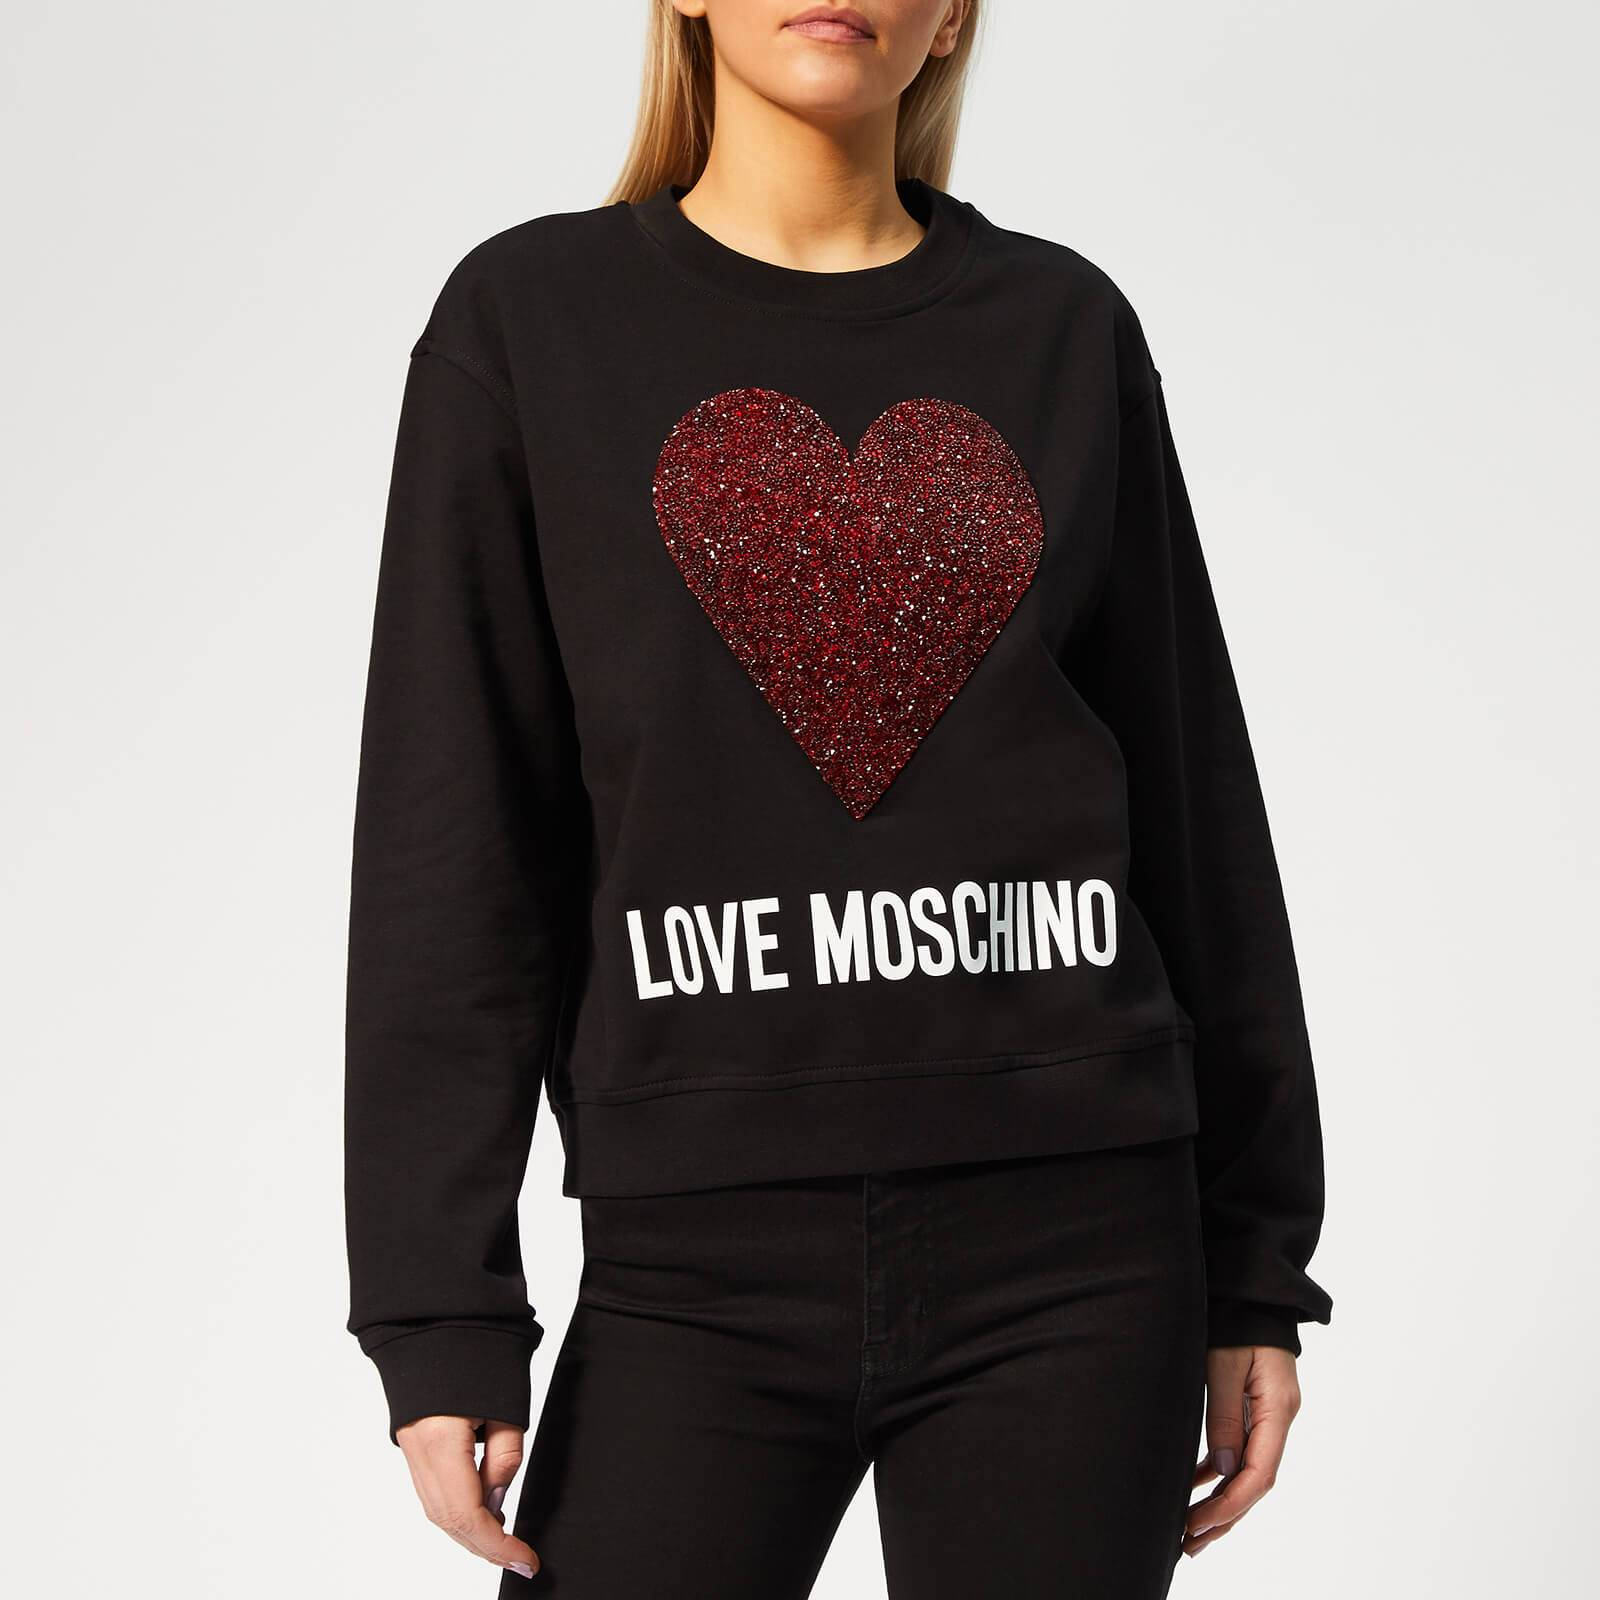 Moschino Love Moschino Women's Heart Logo Sweater - Black - IT 42/UK 10 - Black